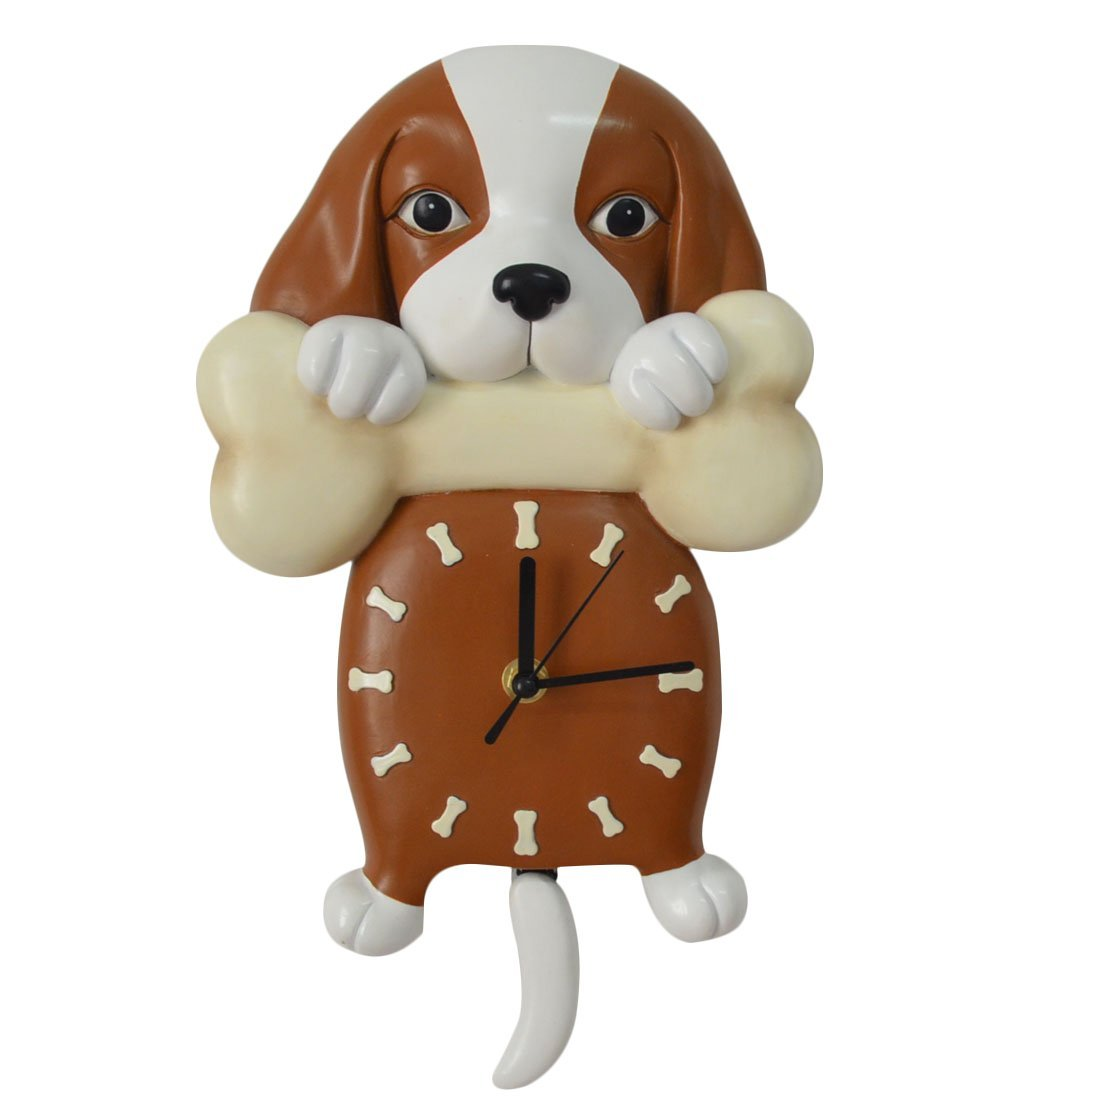 Giftgarden Puppy Dog Holding Bone Wall Clock with Tail Pendulum for Pet Owner